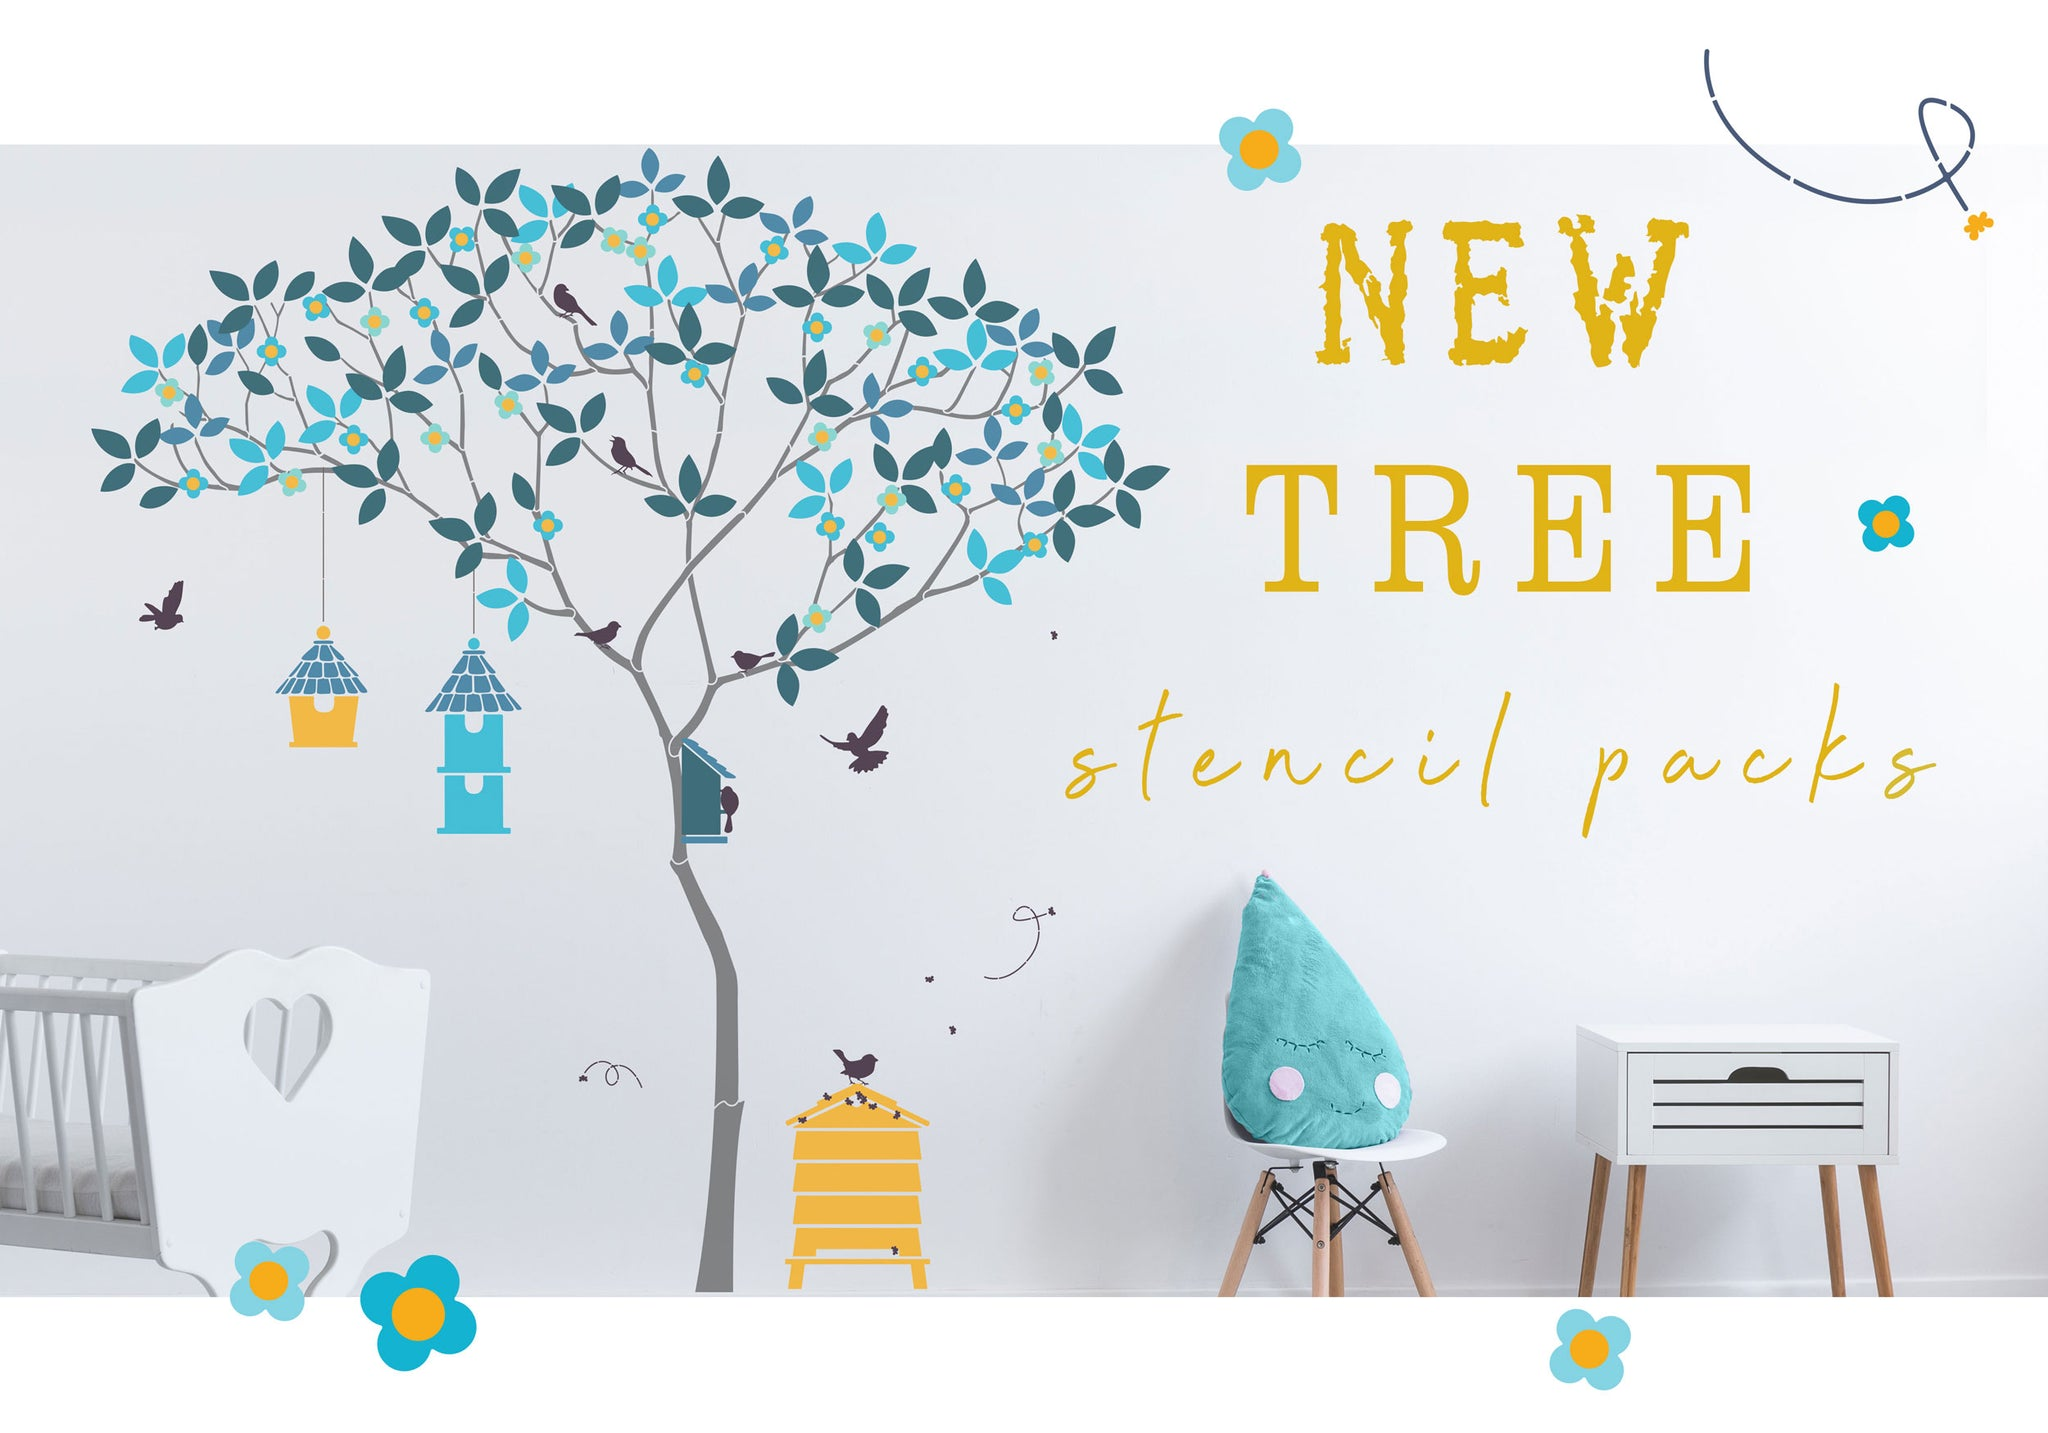 New Tree stencils for walls